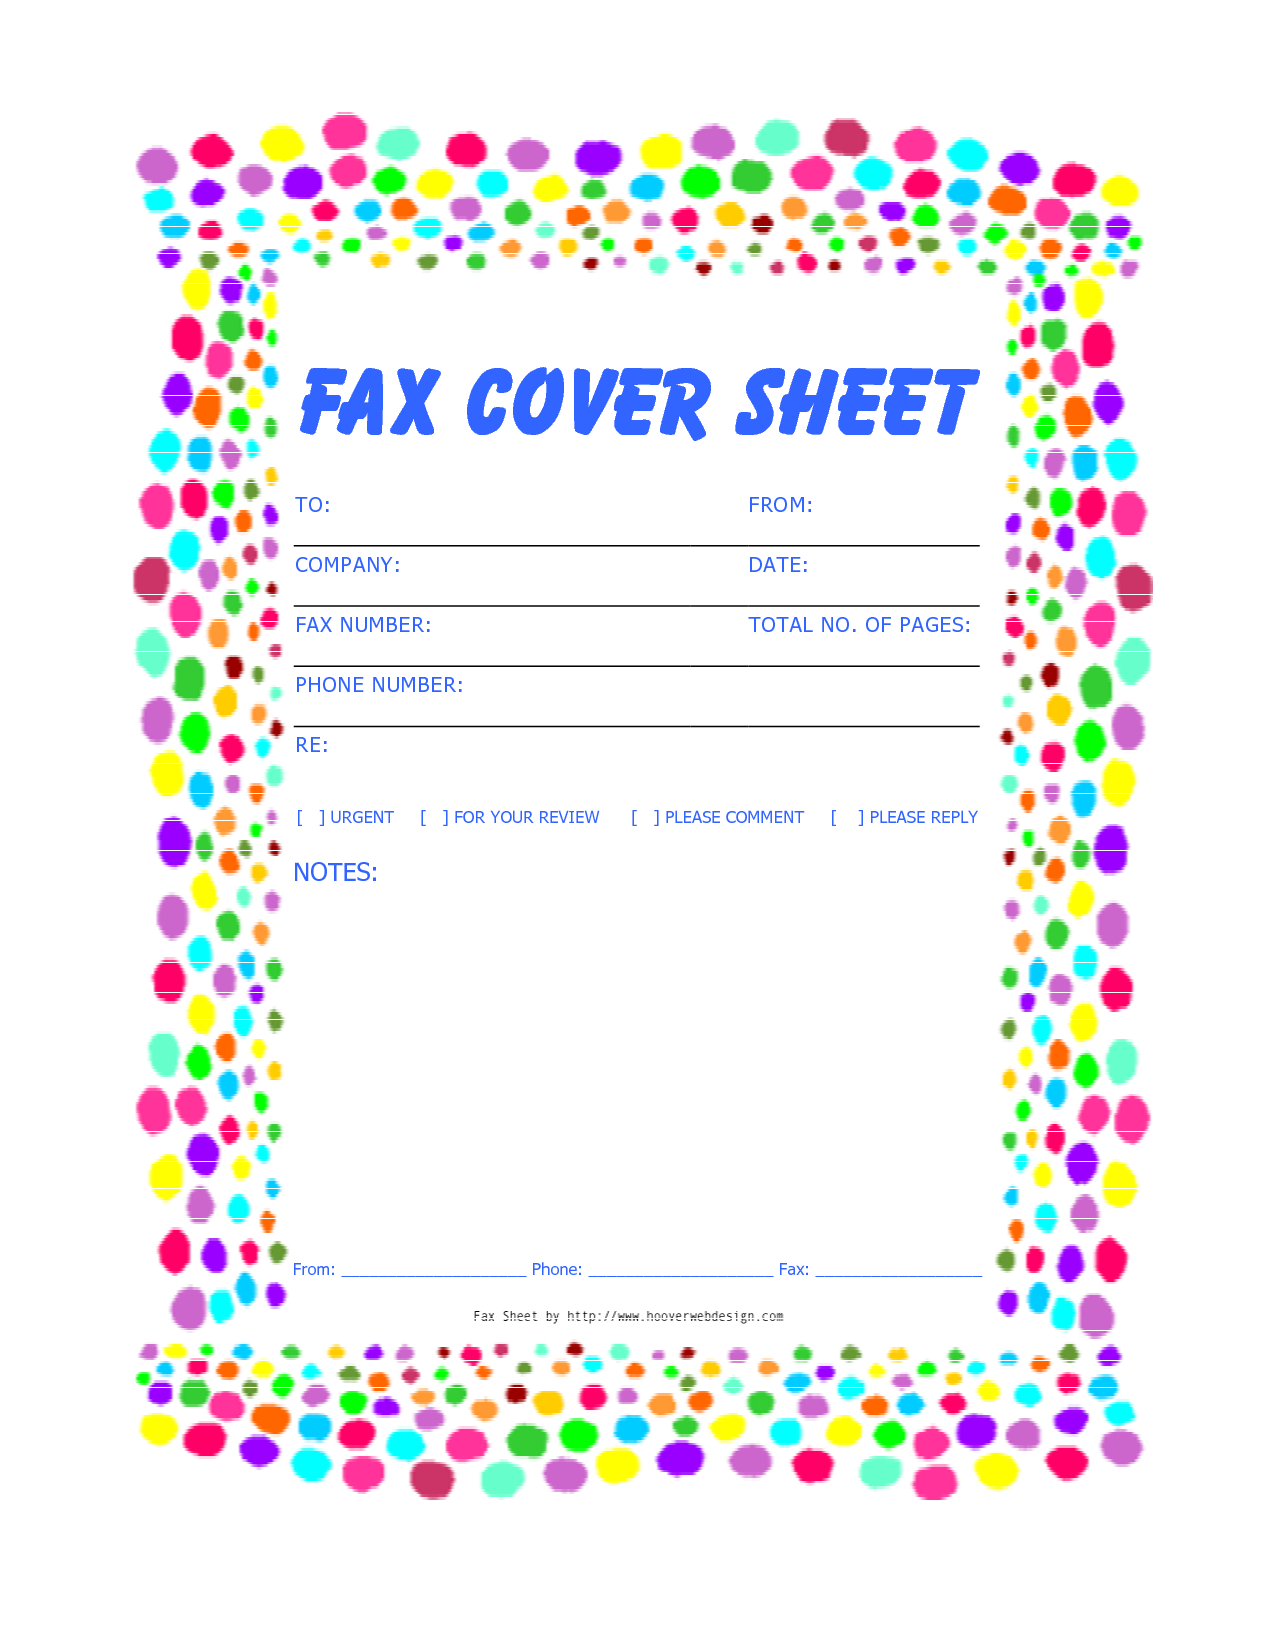 Free Fax Cover Sheet Template Download | This Site Provides Templates Of Free  Fax Cover Sheet Download. Professional/ Personal/ Blank/ Printable Fax Cover  ...